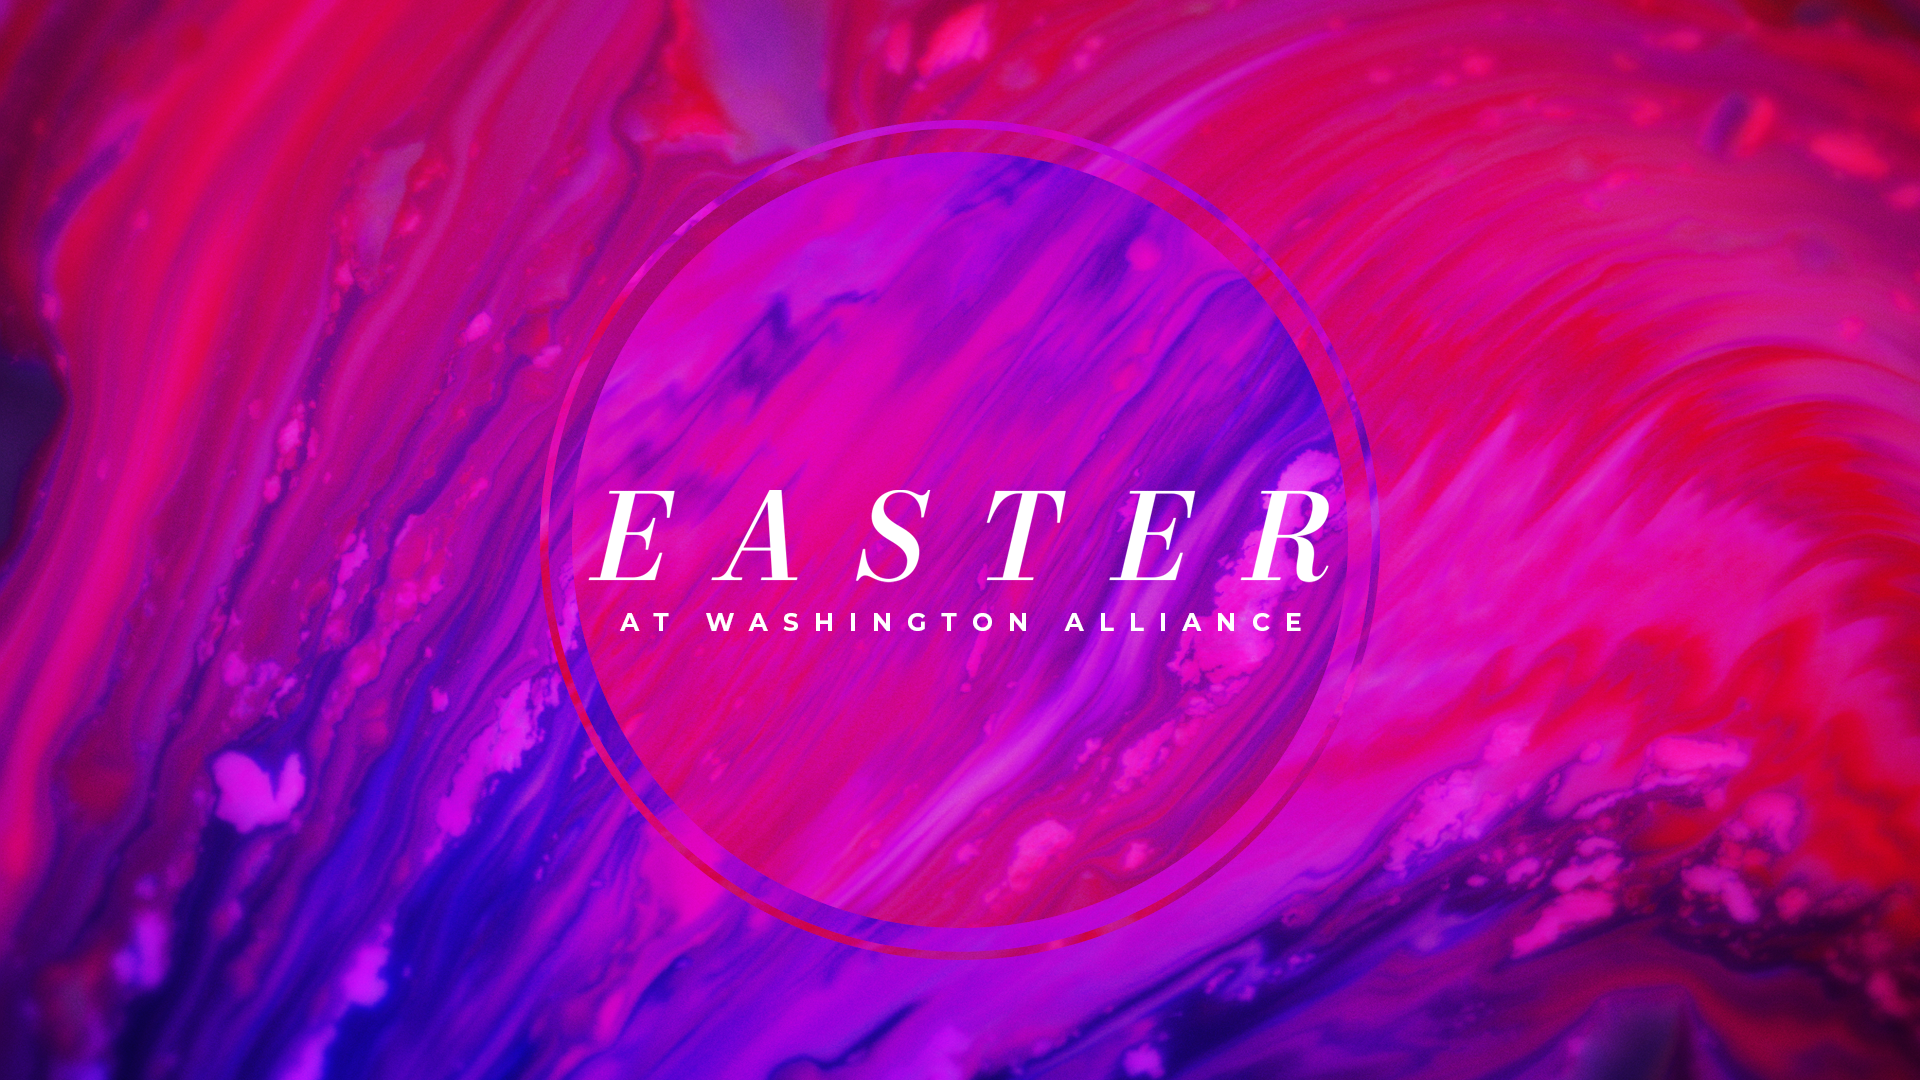 Easter at Washington Alliance 2019